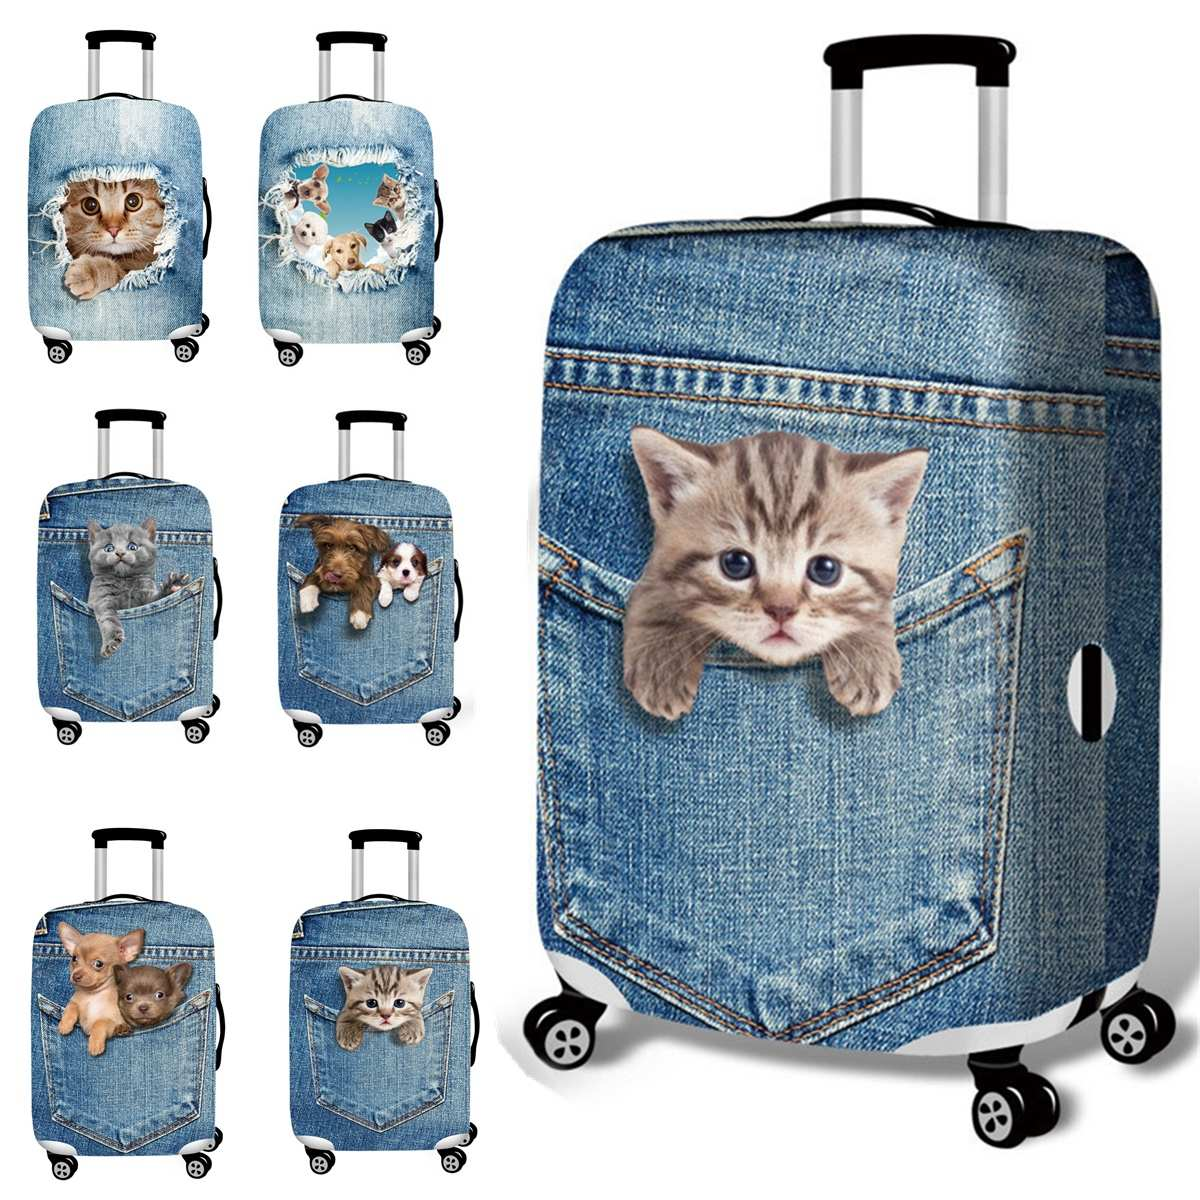 3D Cute Cat Dog Elastic Luggage Cover Trolley Case Cover Travel Luggage Dust Cover Suitcase Protector Trolley Case Accessories